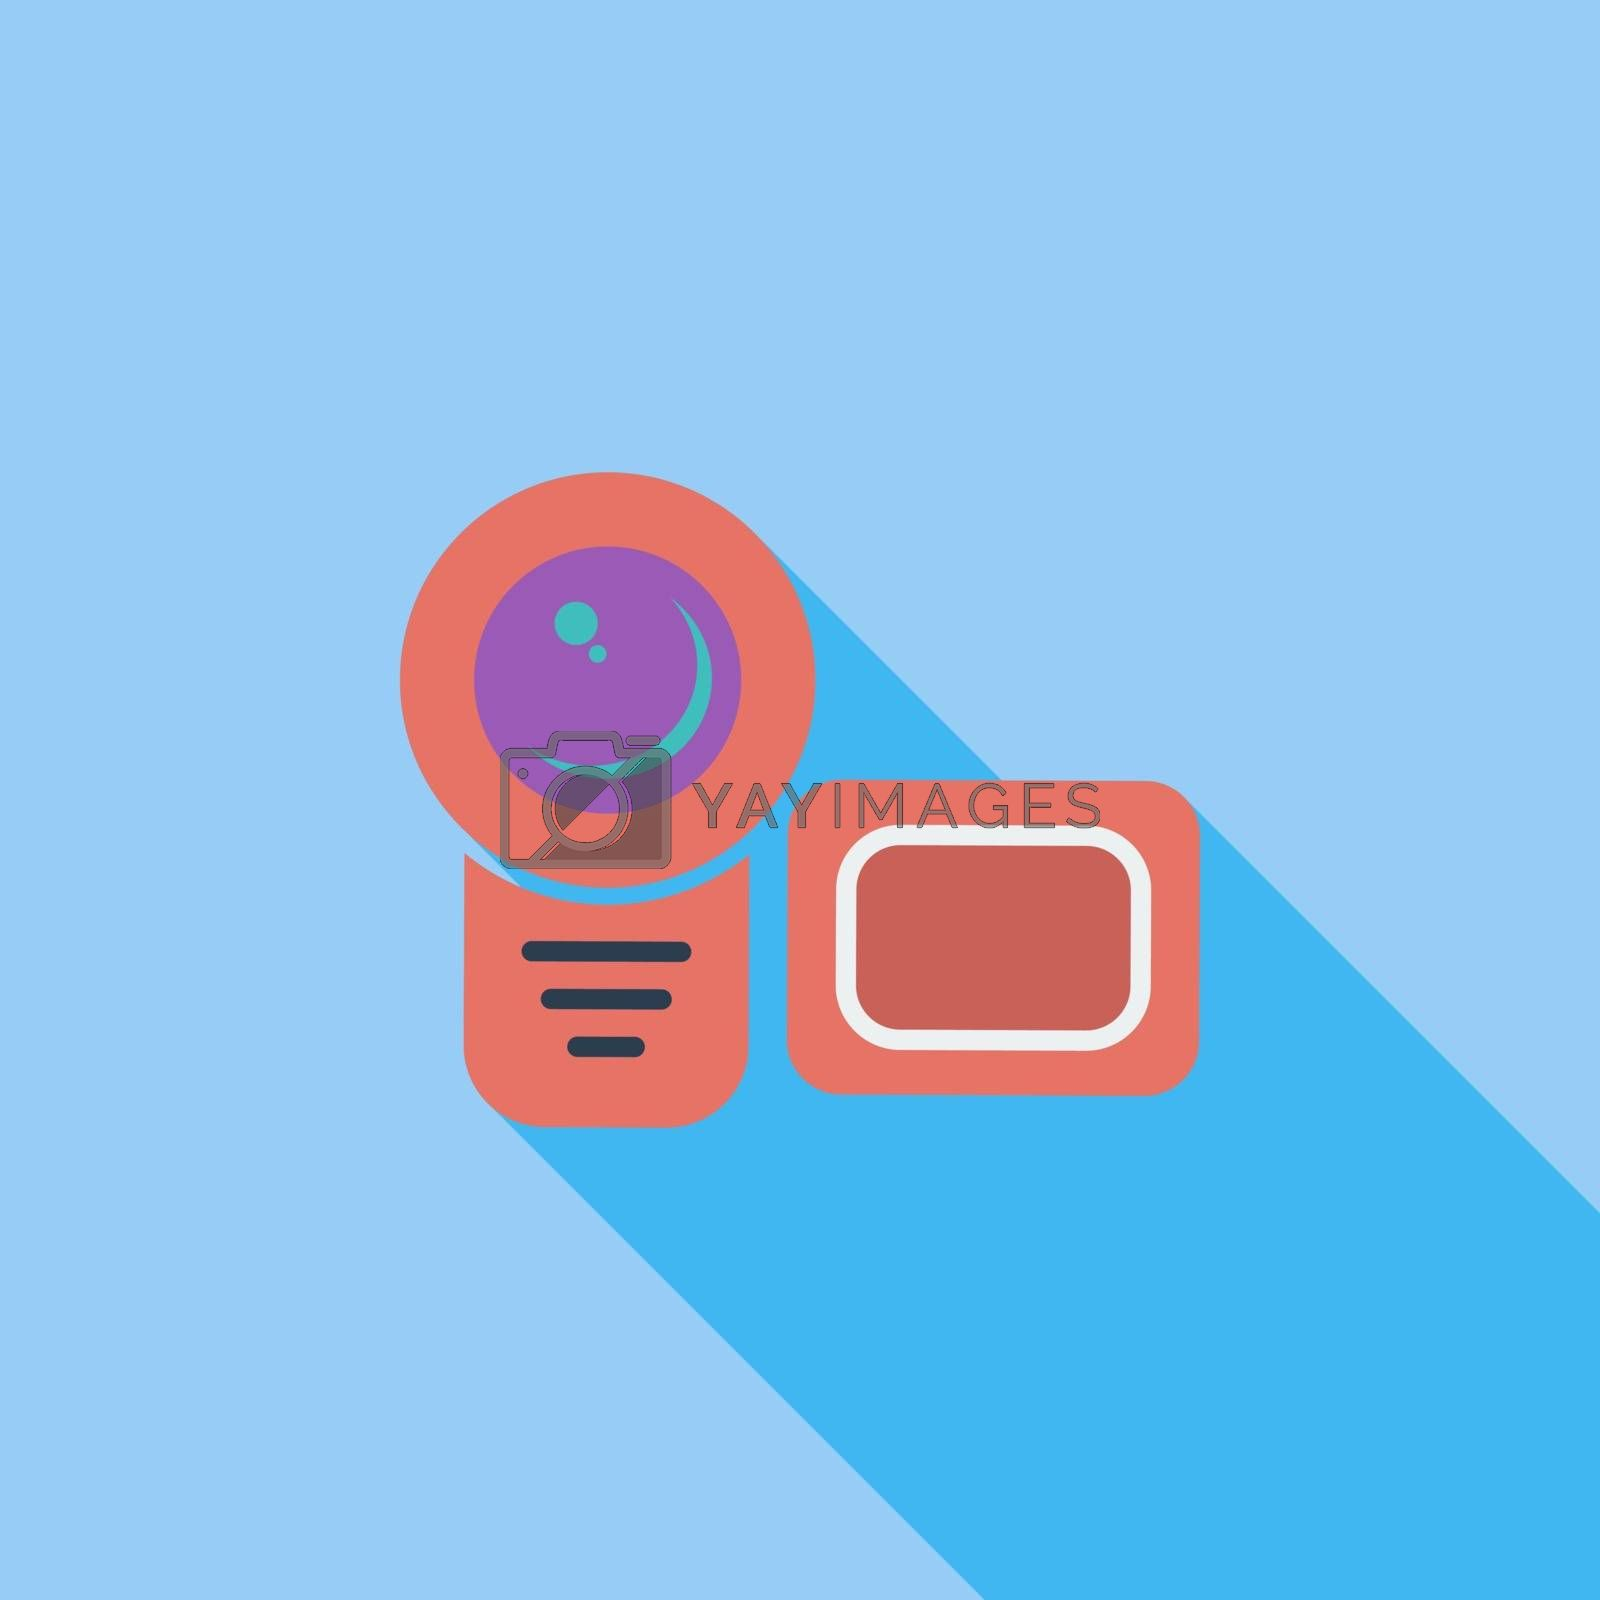 Video camera icon. Flat vector related icon with long shadow for web and mobile applications. It can be used as - logo, pictogram, icon, infographic element. Vector Illustration.